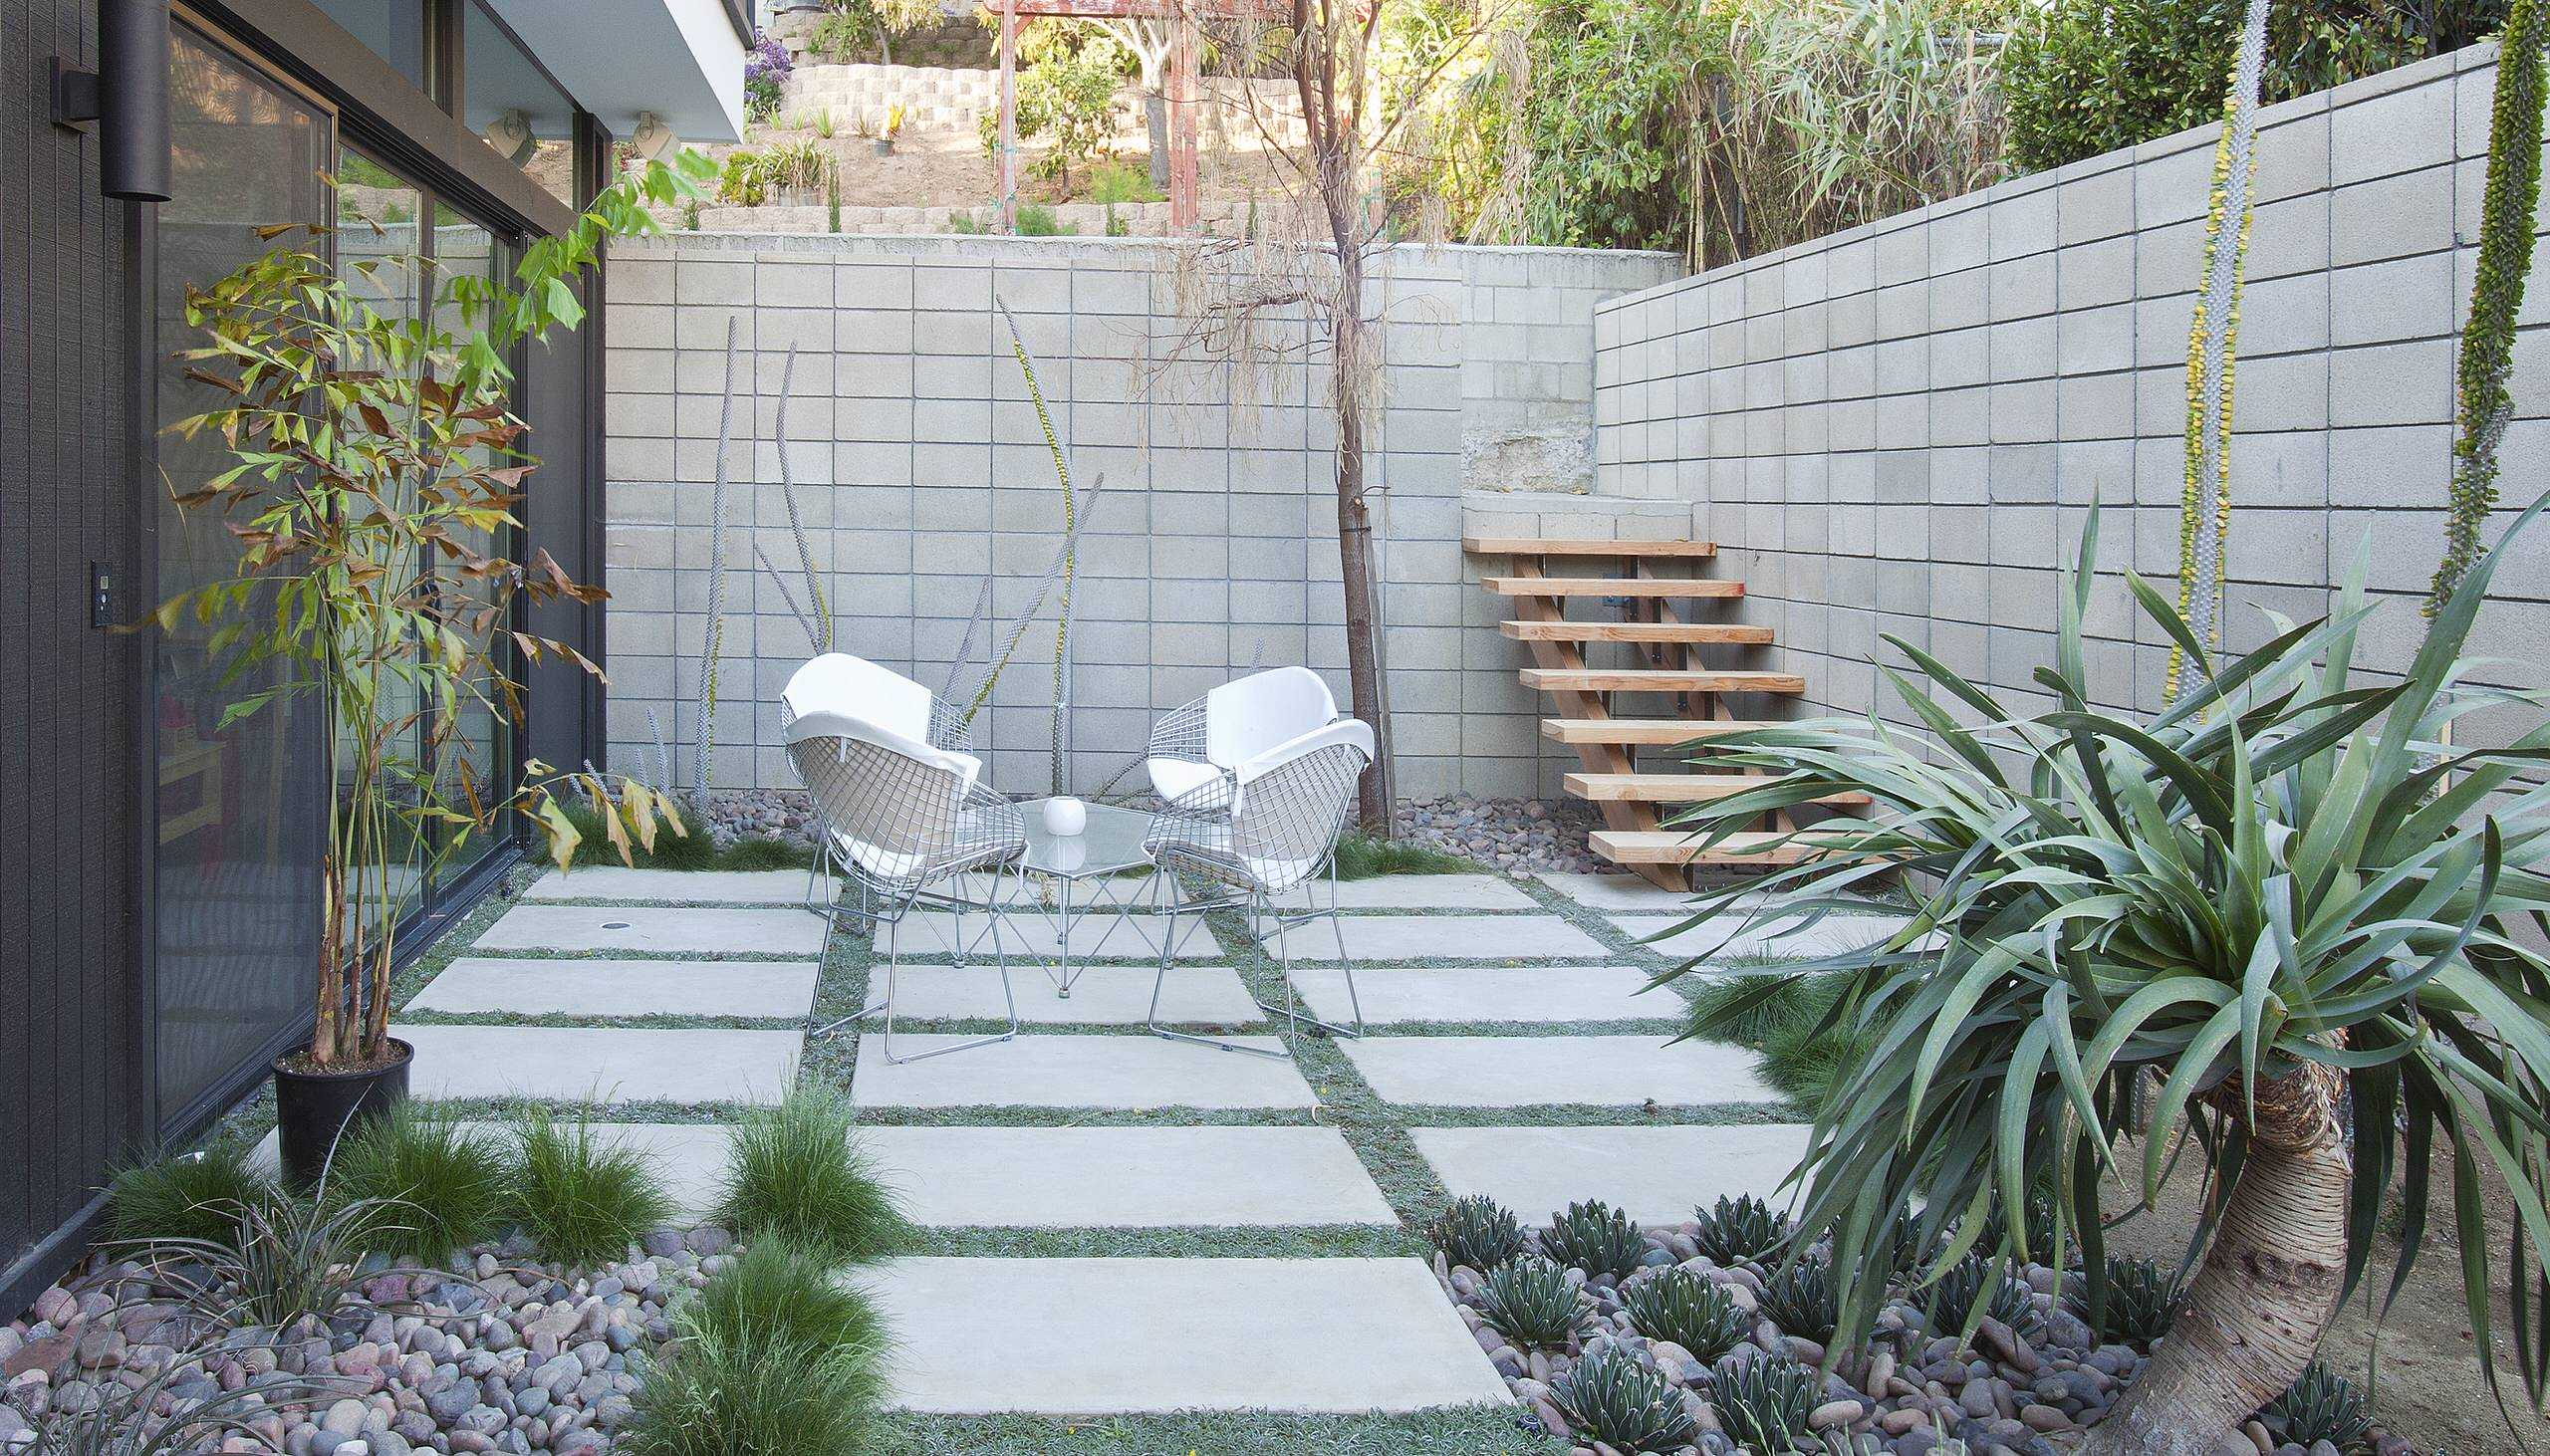 18 Spectacular Modern Patio Designs To Enjoy The Outdoors